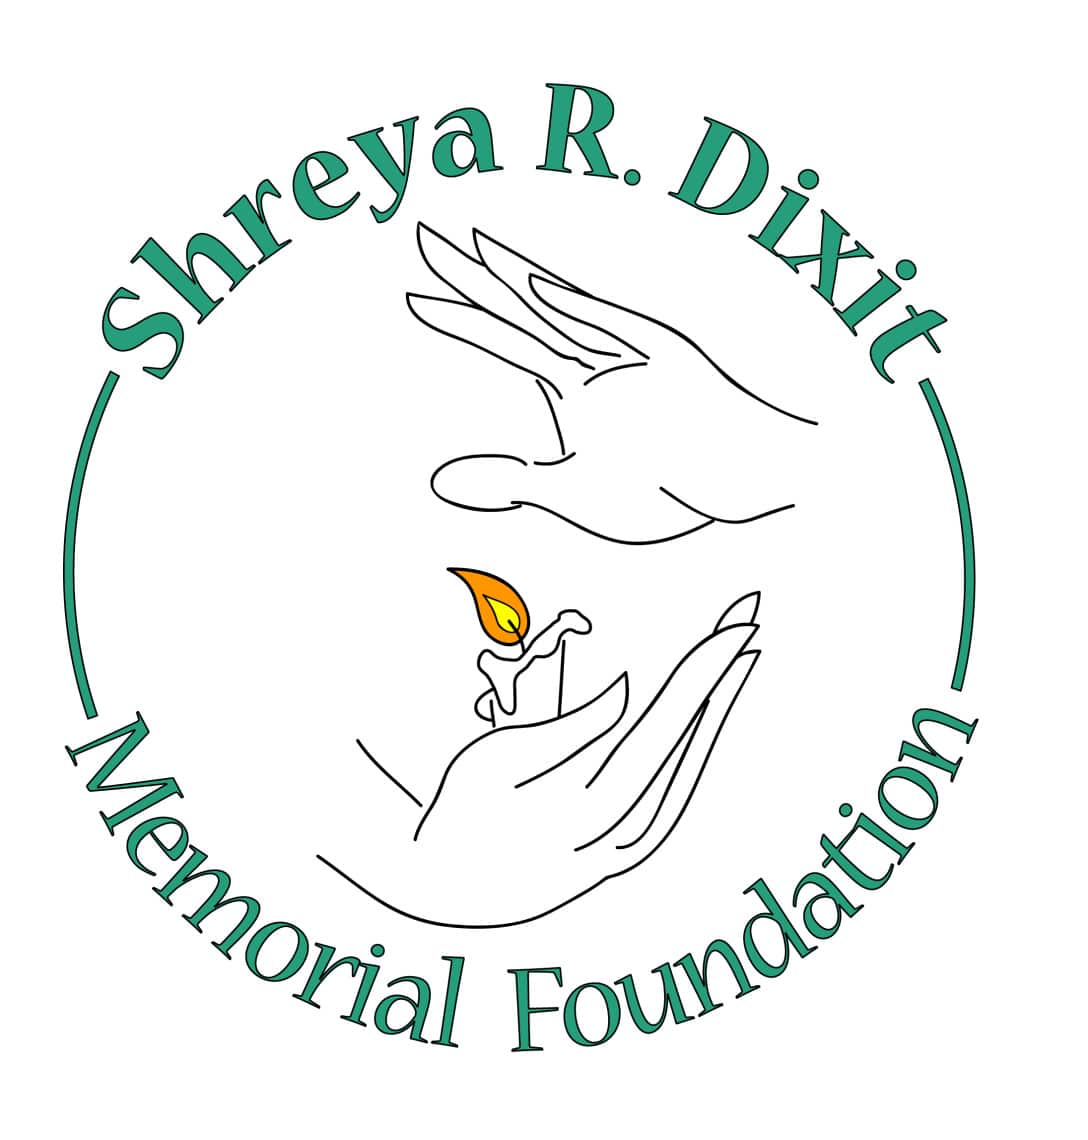 Shreya R. Dixit Memorial Foundation Logo